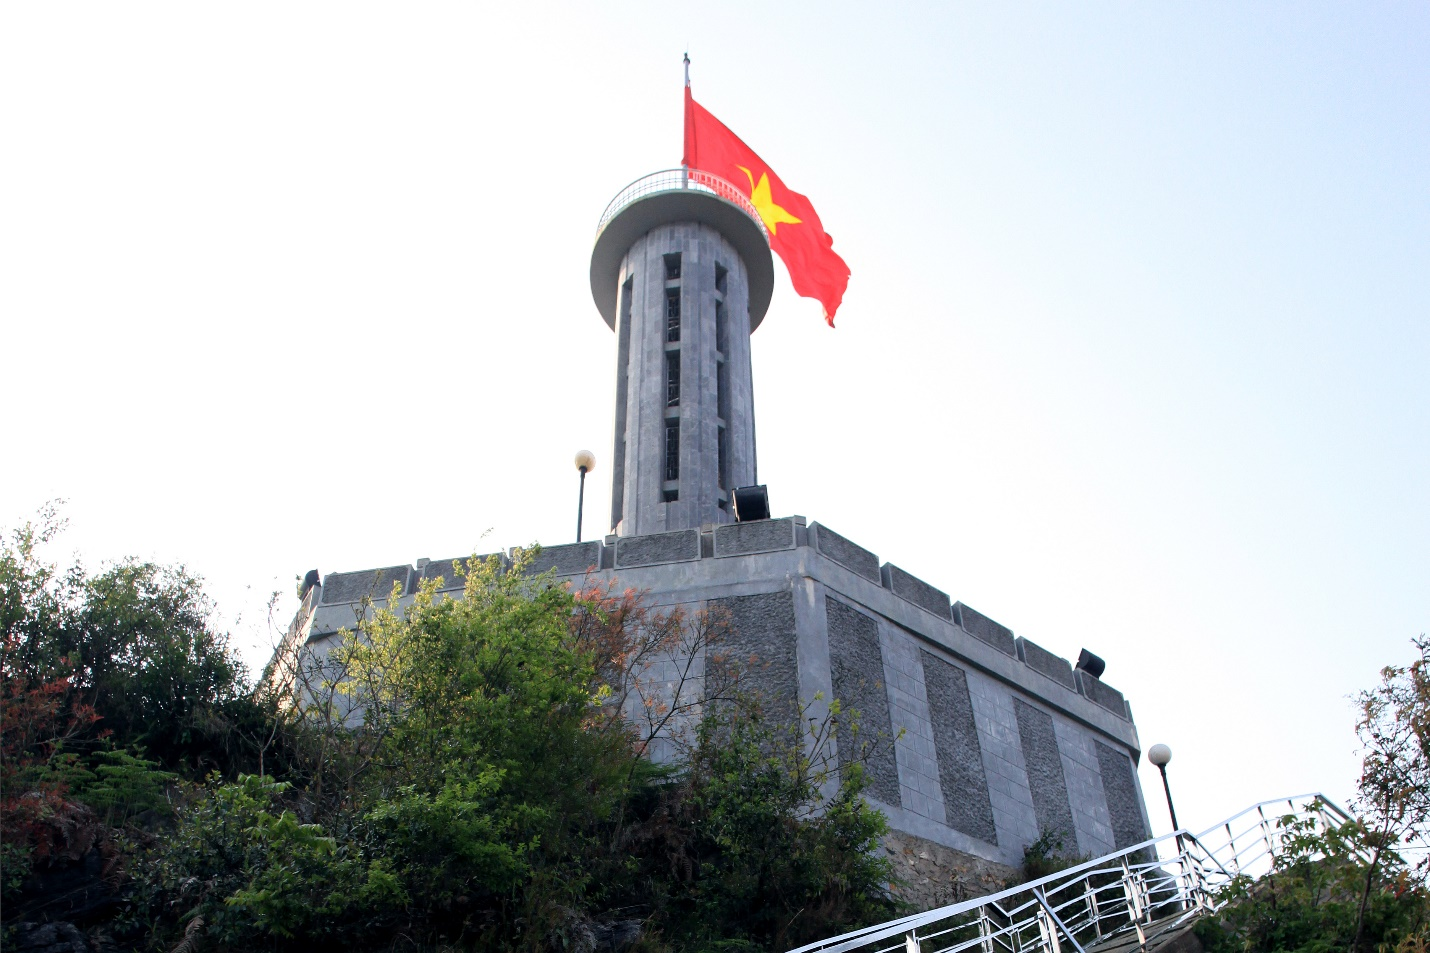 Lung Cu flag pole is one of the most attractive destinations in Dong Van plateau